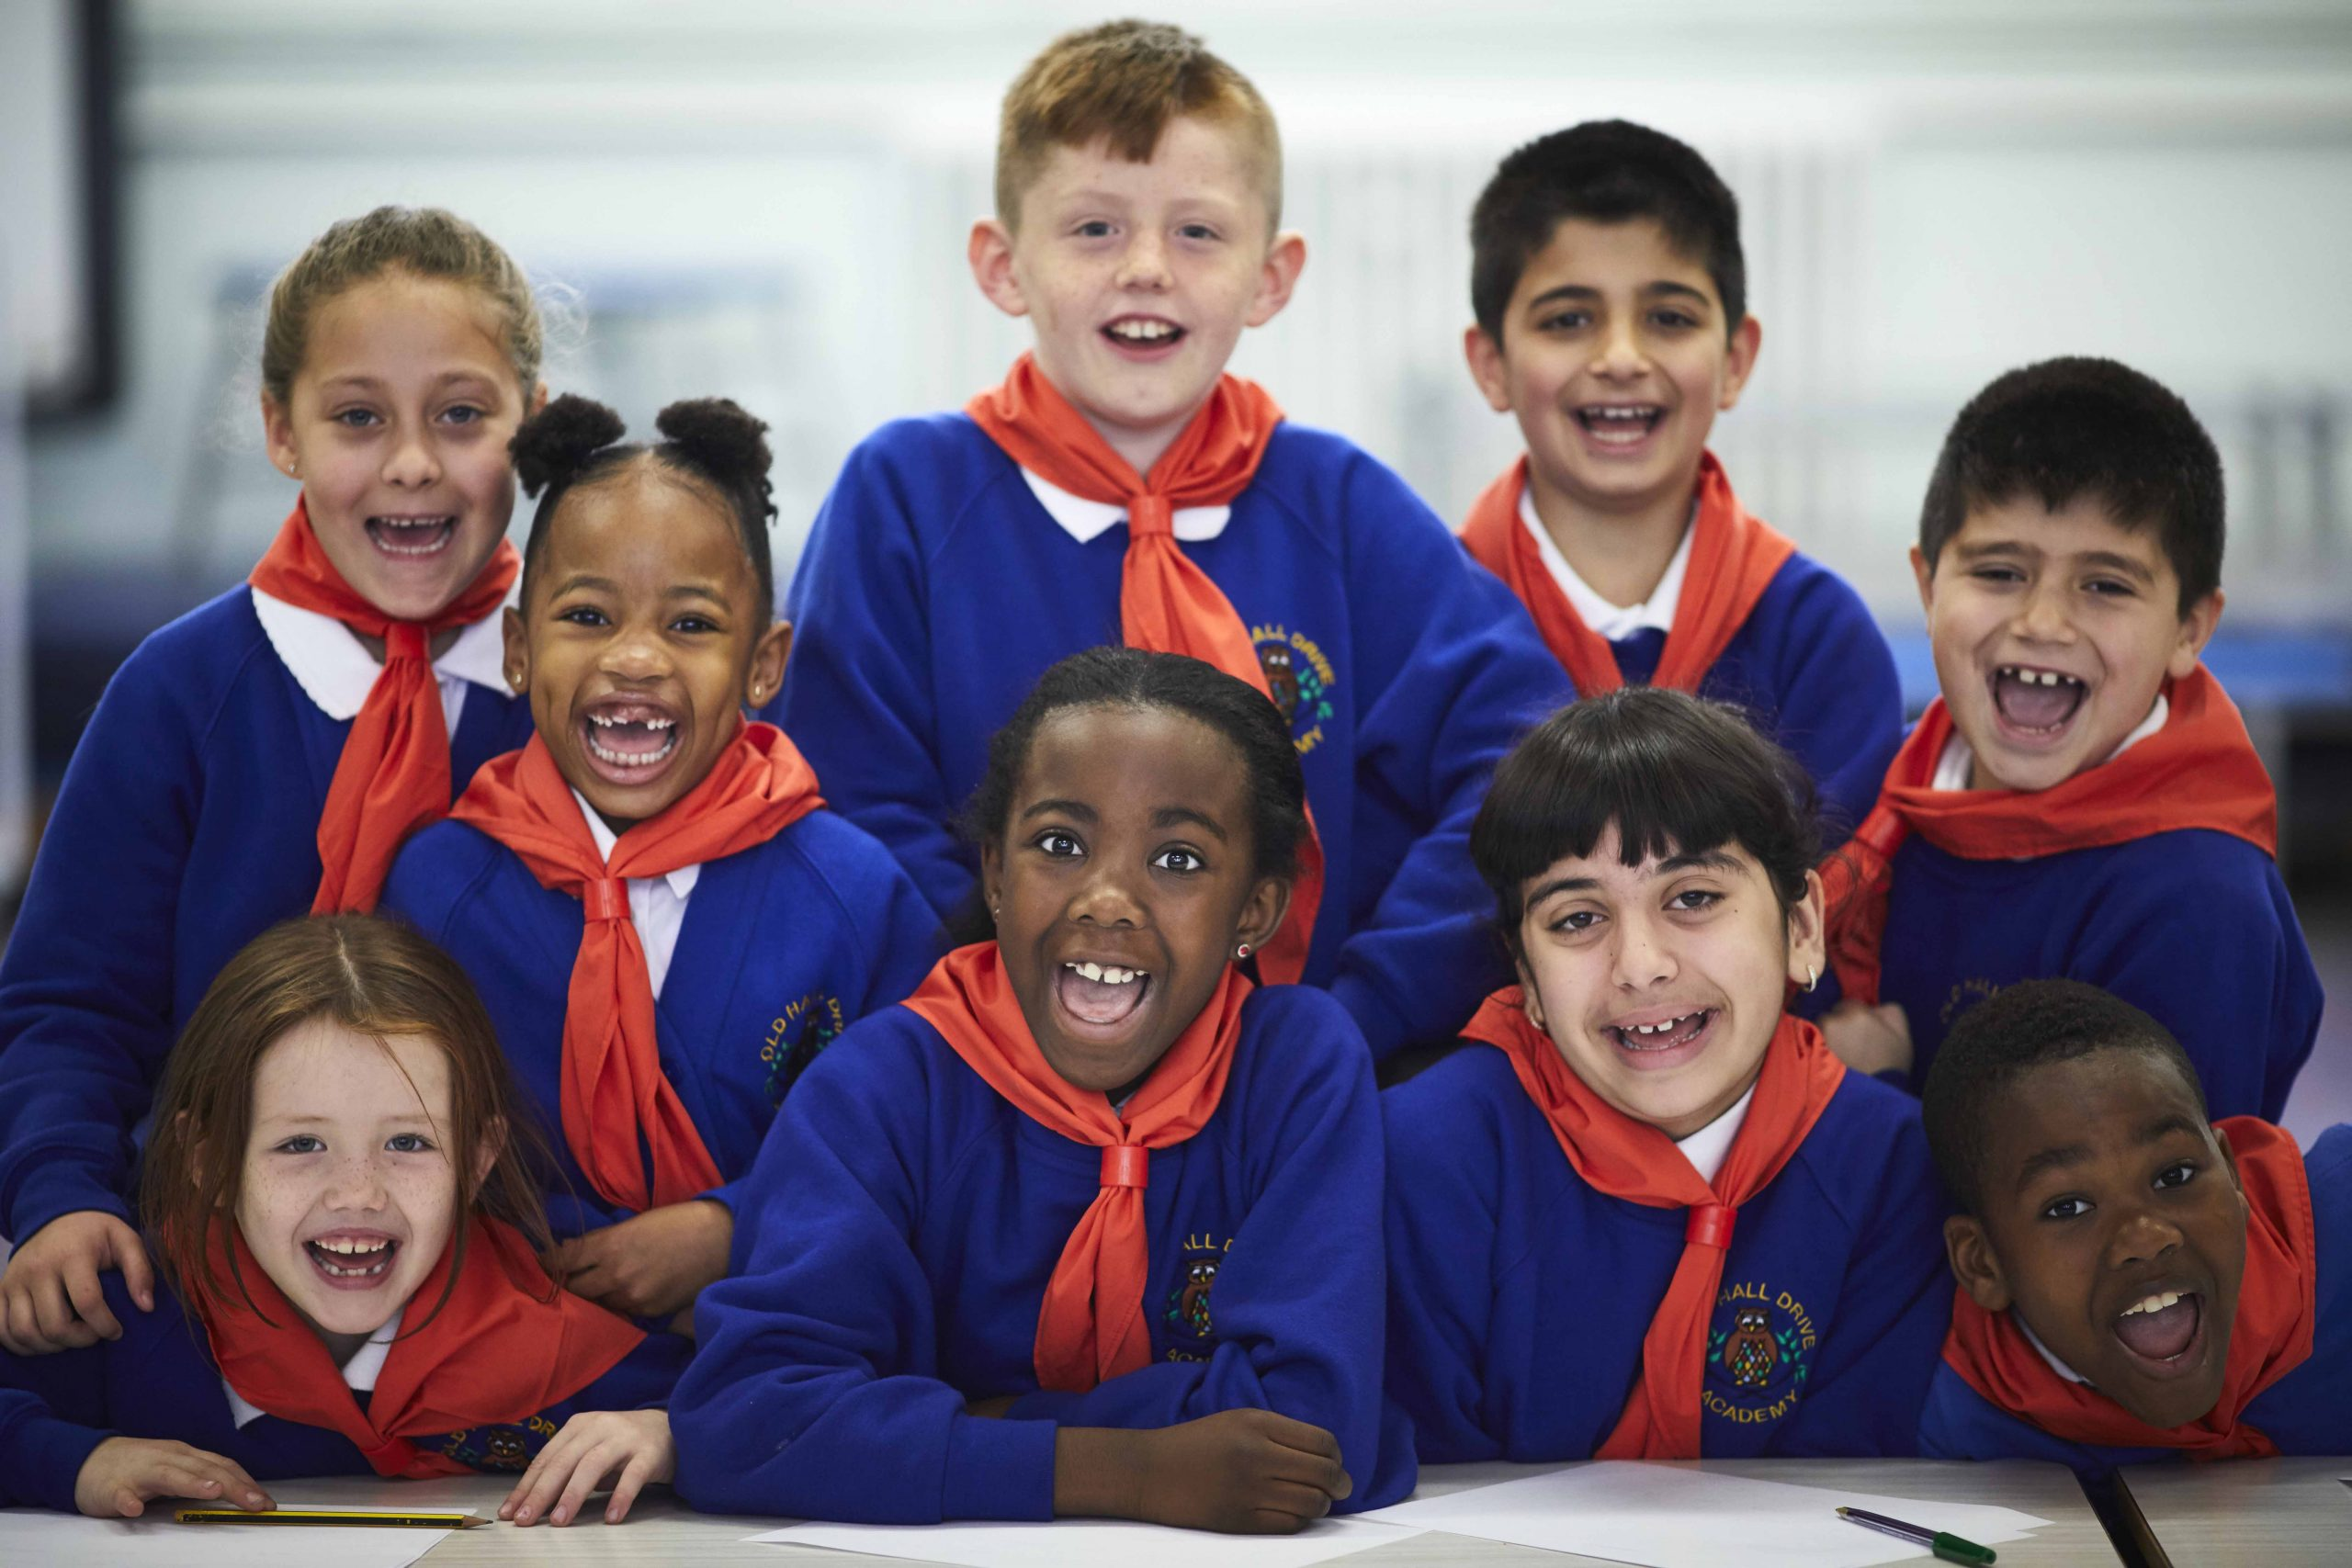 Old Hall Drive Academy | Association for Character Education